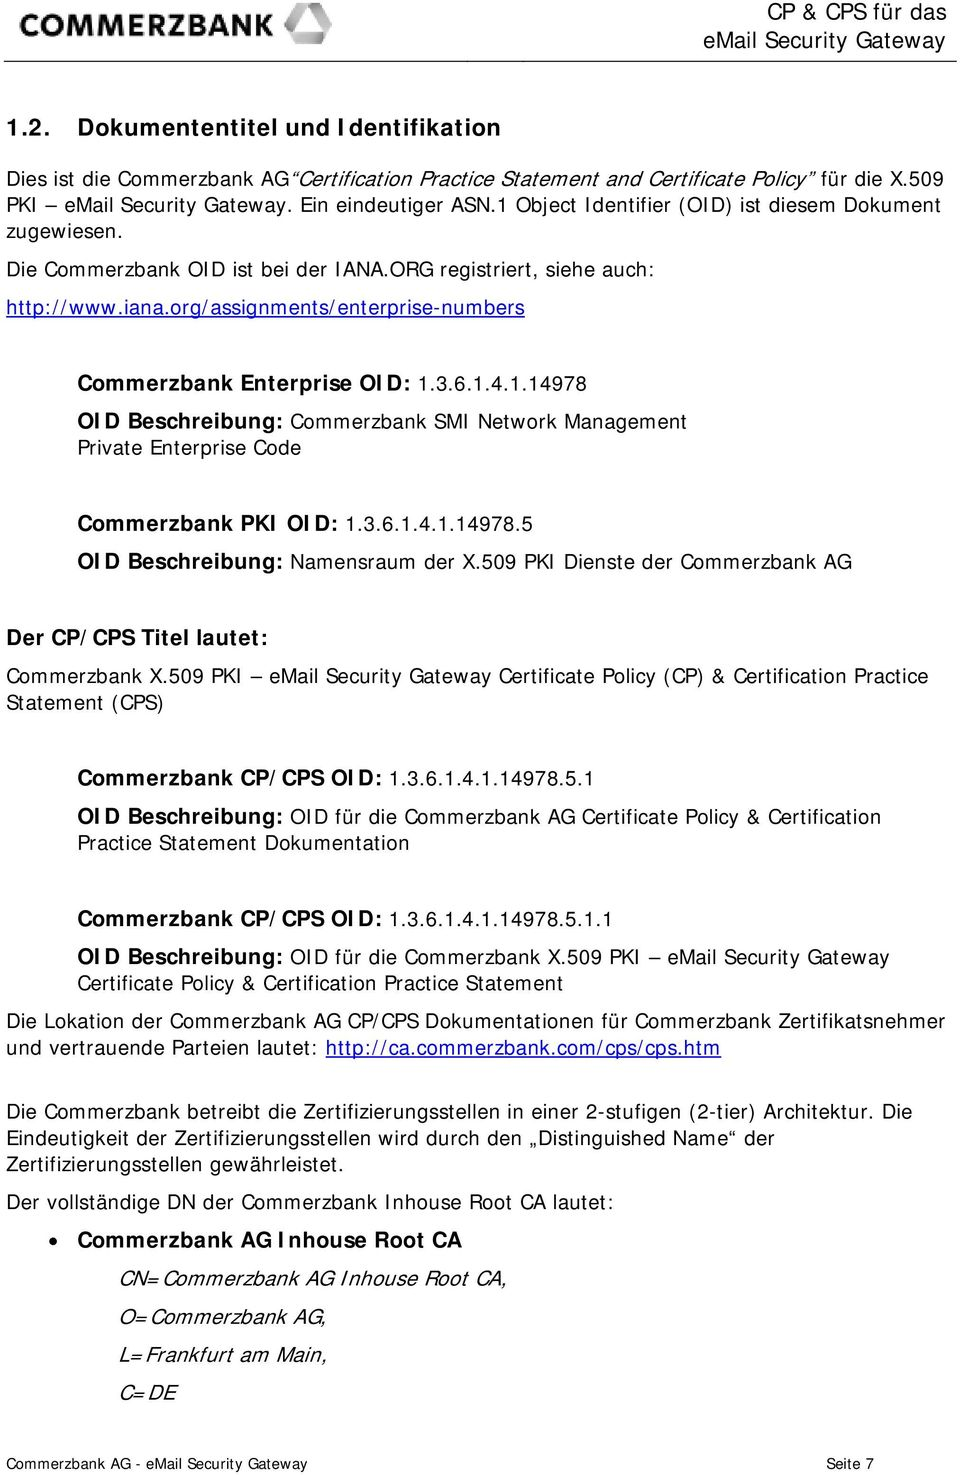 org/assignments/enterprise-numbers Commerzbank Enterprise OID: 1.3.6.1.4.1.14978 OID Beschreibung: Commerzbank SMI Network Management Private Enterprise Code Commerzbank PKI OID: 1.3.6.1.4.1.14978.5 OID Beschreibung: Namensraum der X.